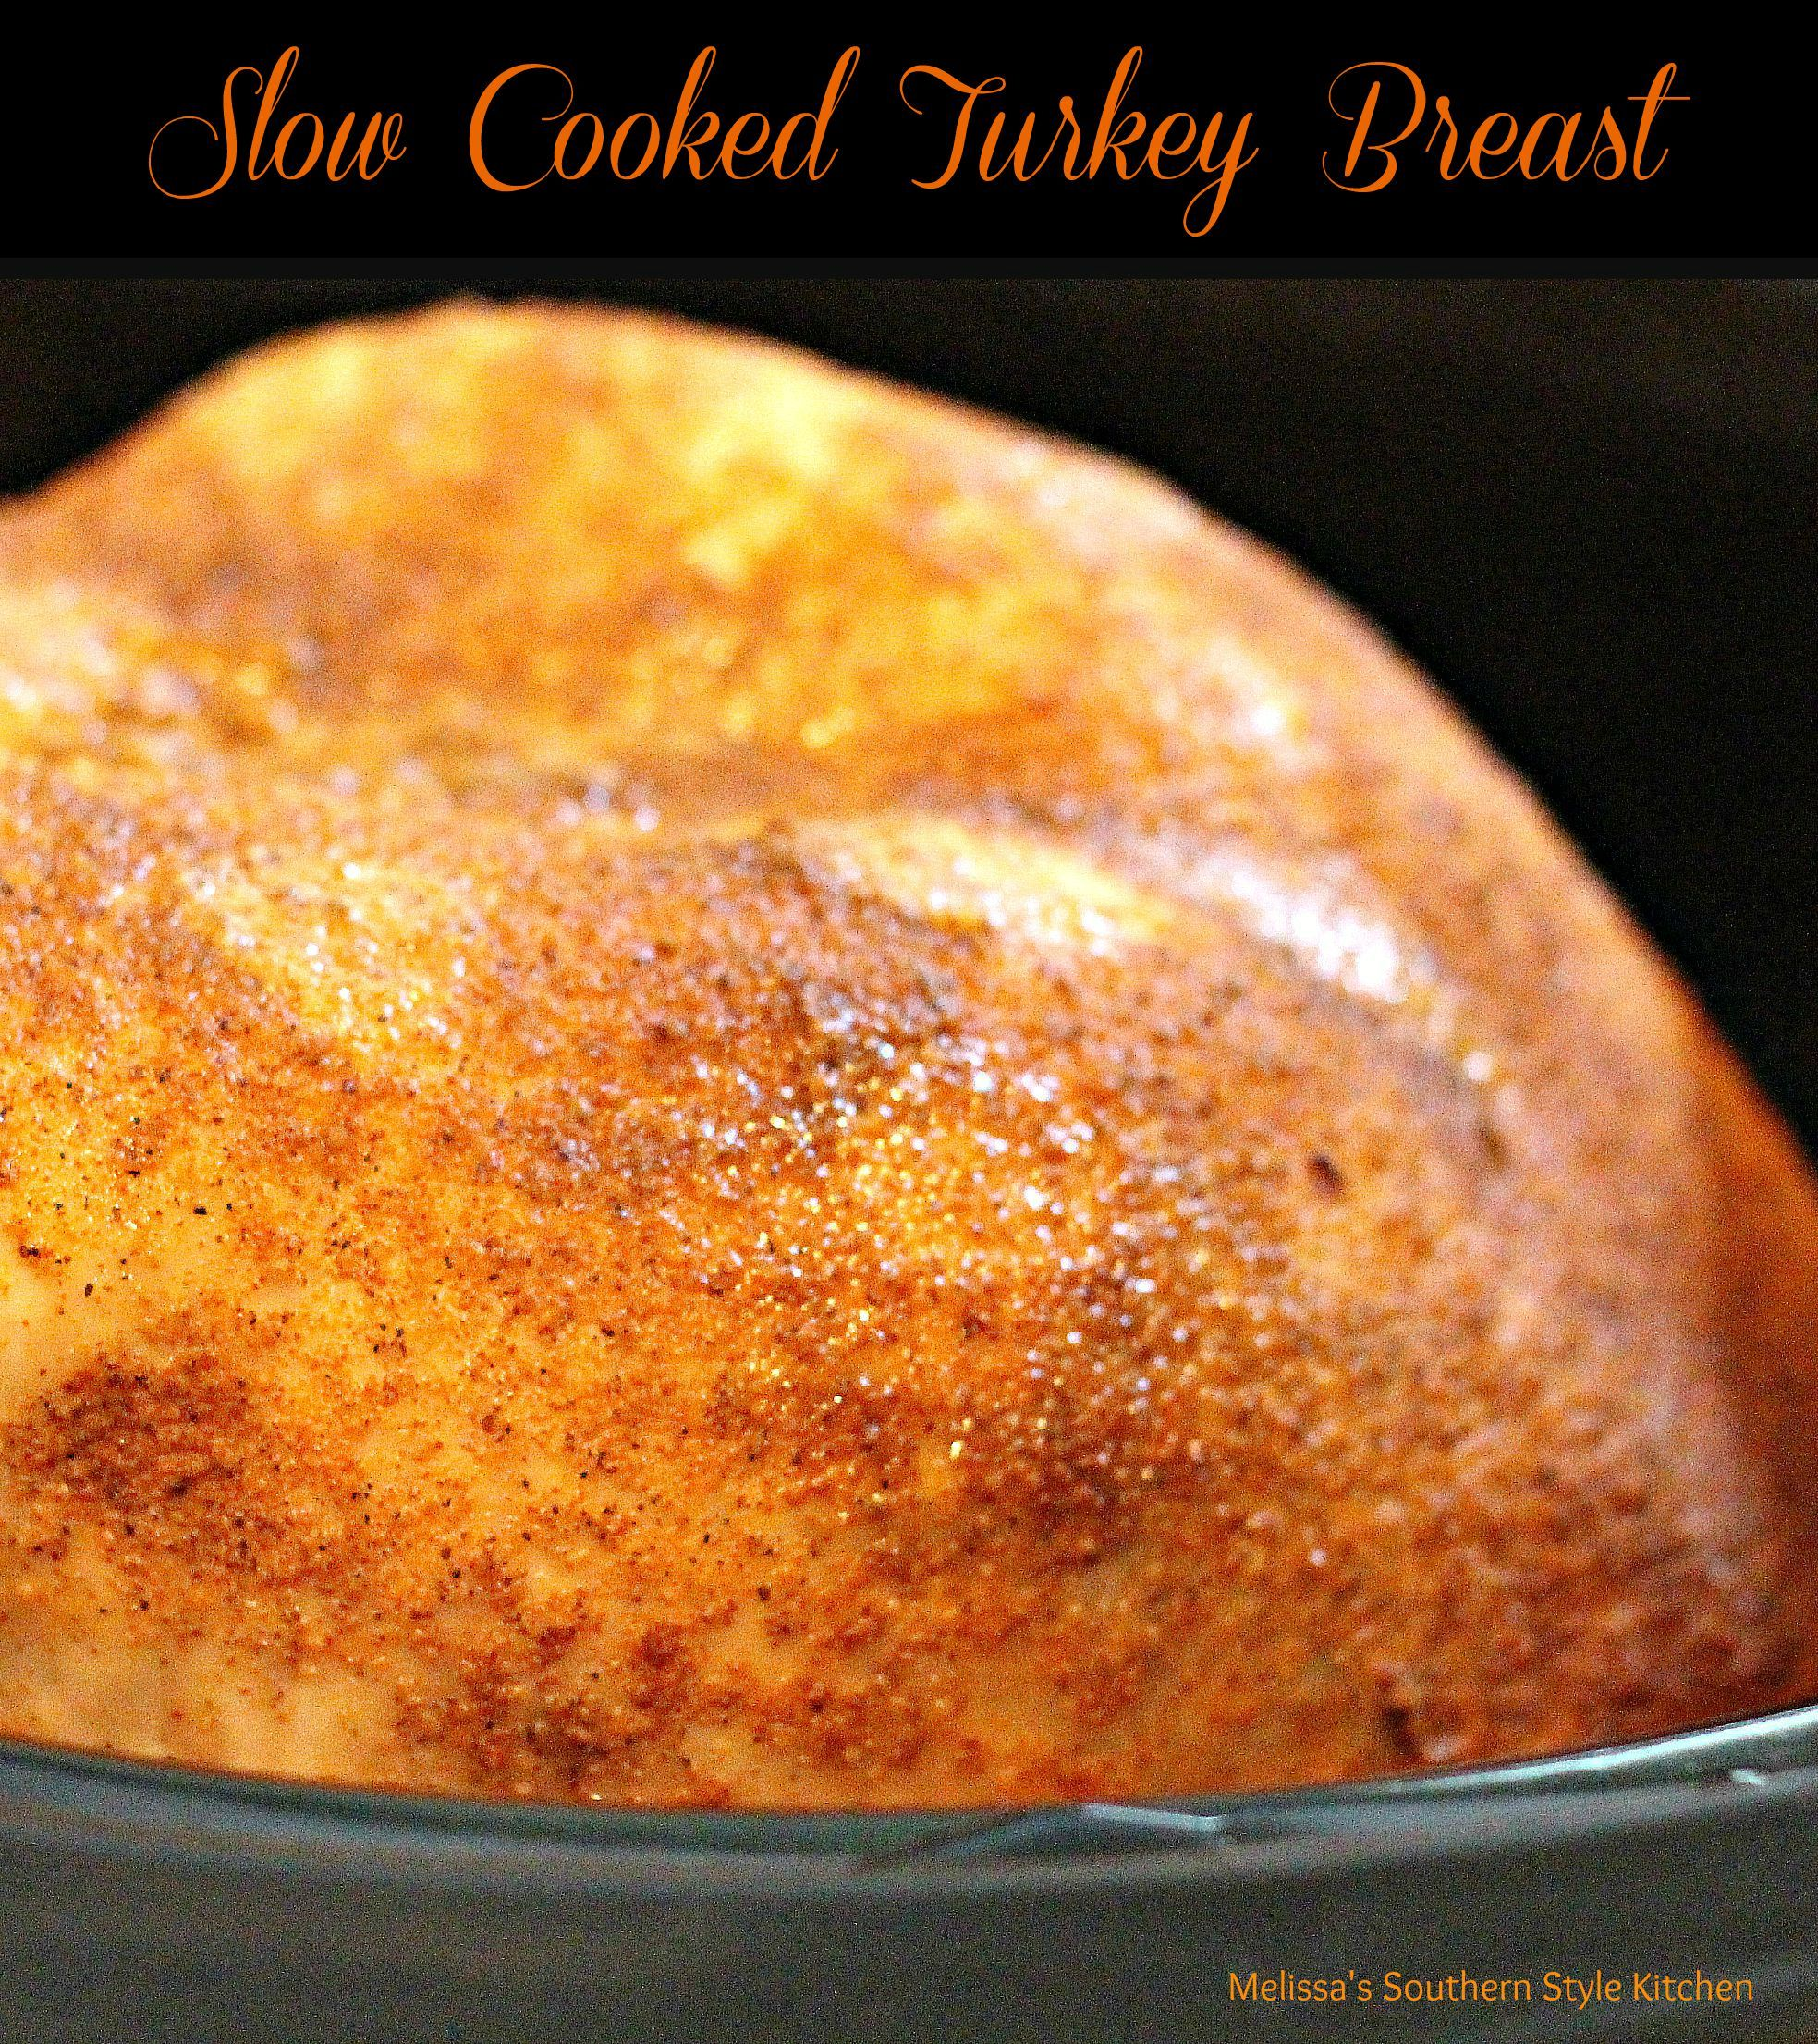 Tender And Moist Slow Cooked Turkey Breast For The